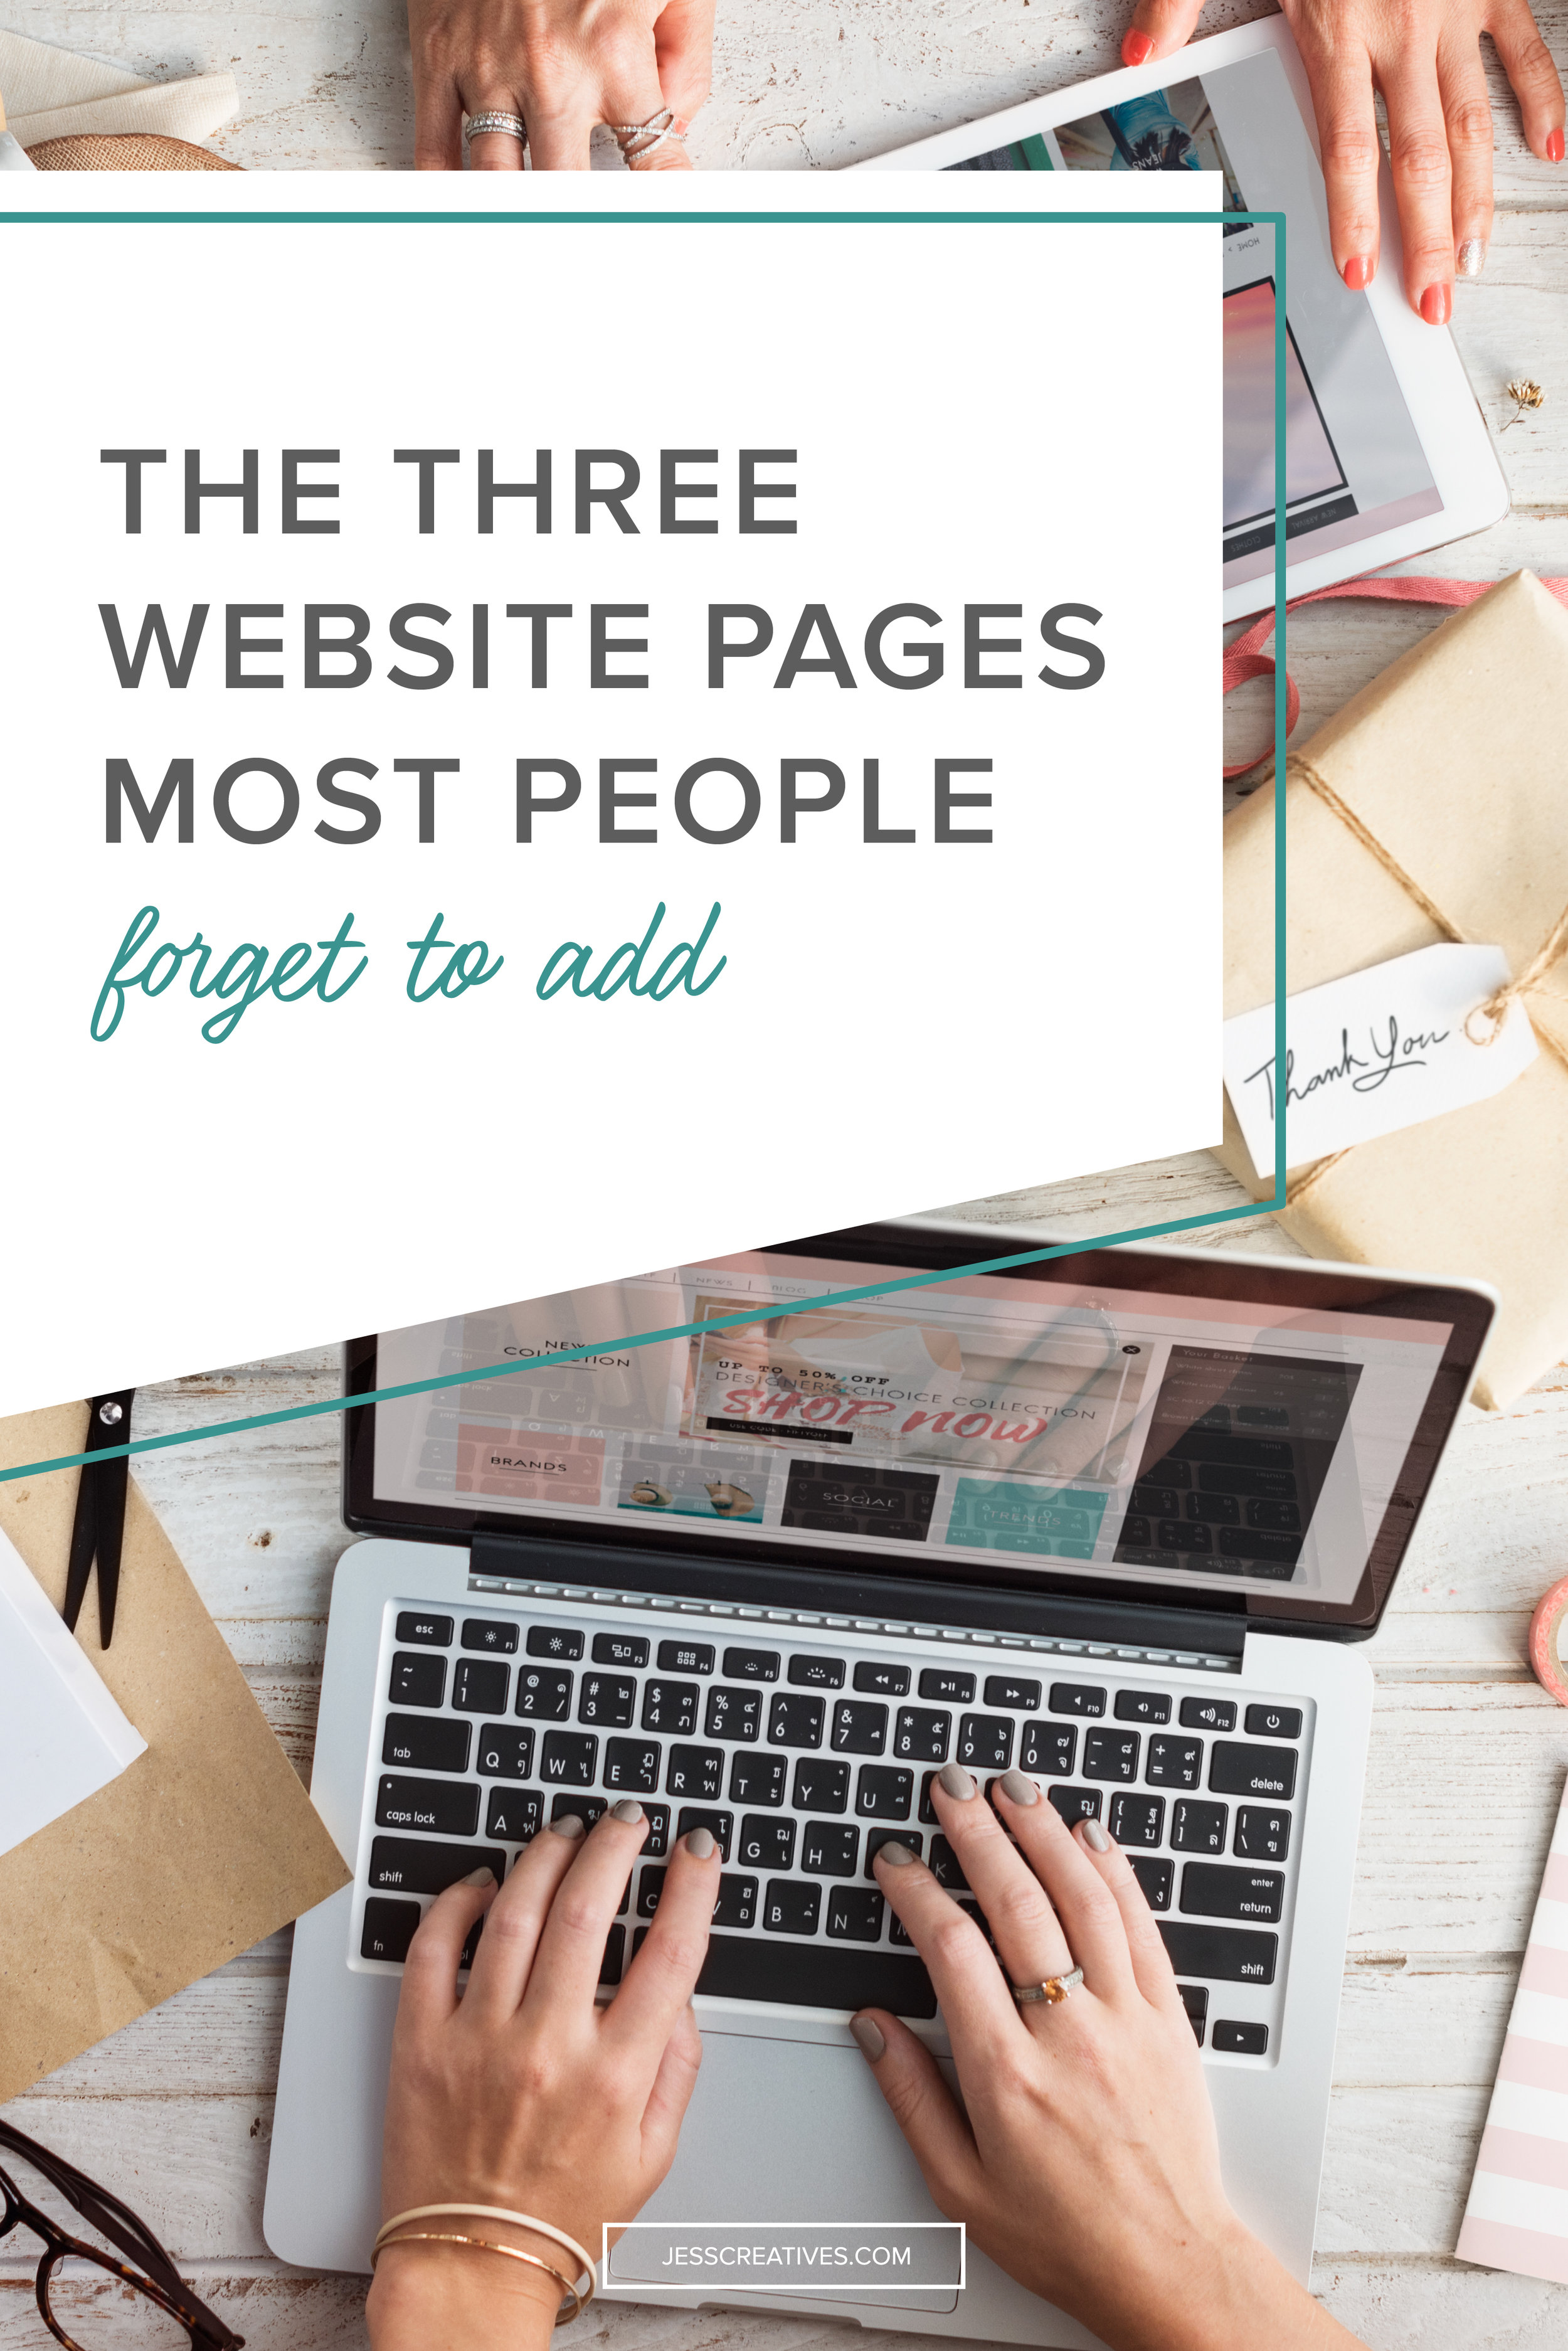 The Three Website Pages Most People Forget To Add